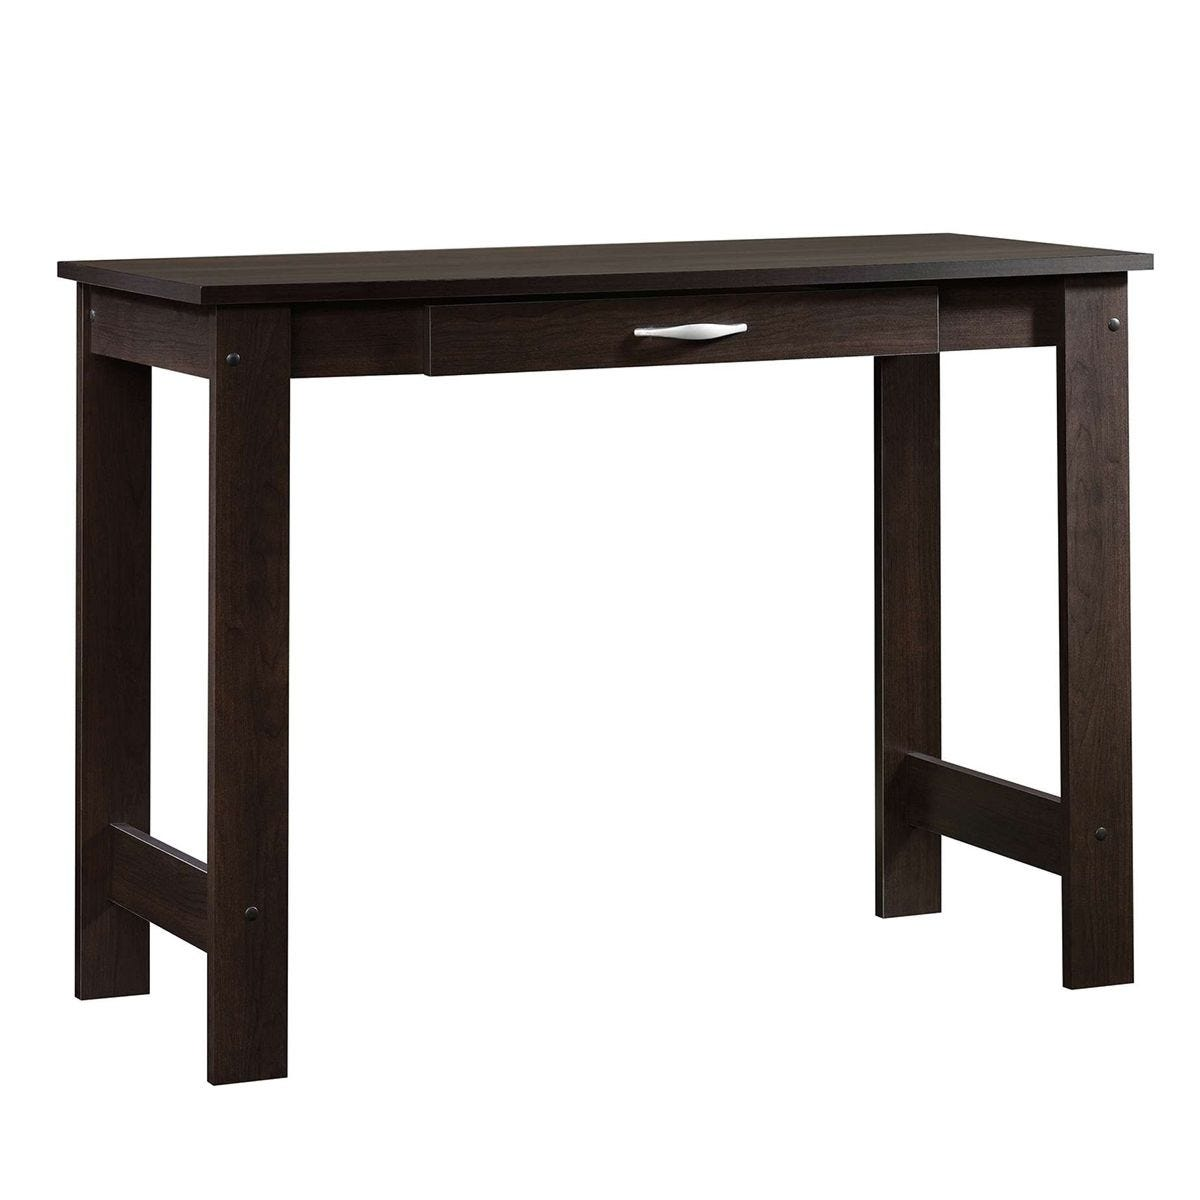 Teknik Home Office Writing Table - Cherry Effect